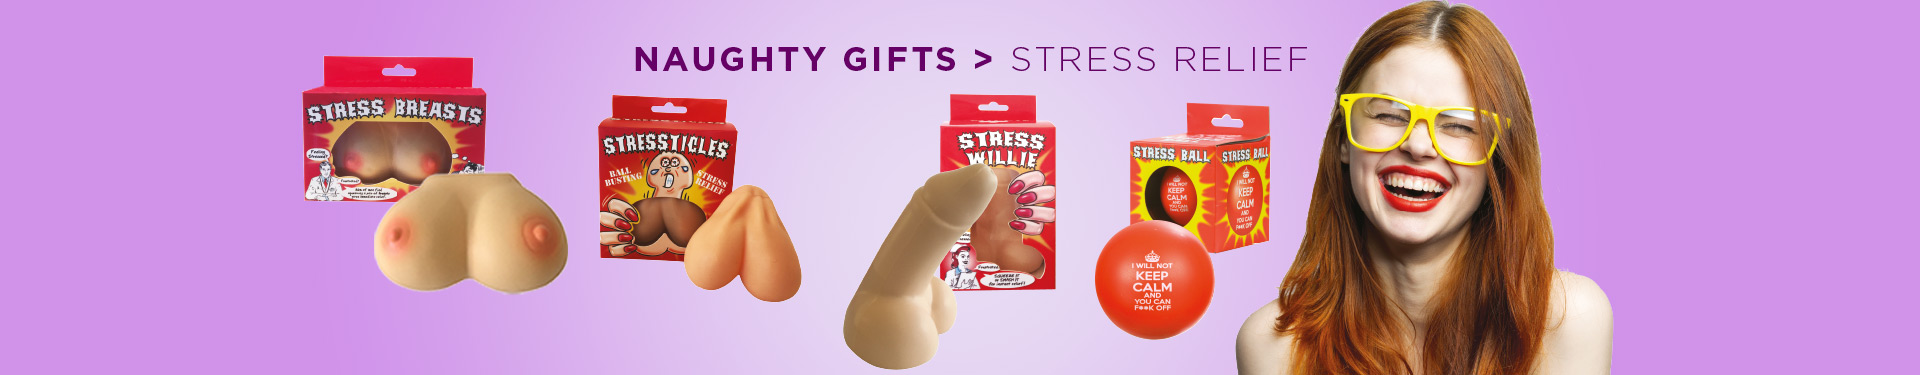 Naughty Gifts > Stress